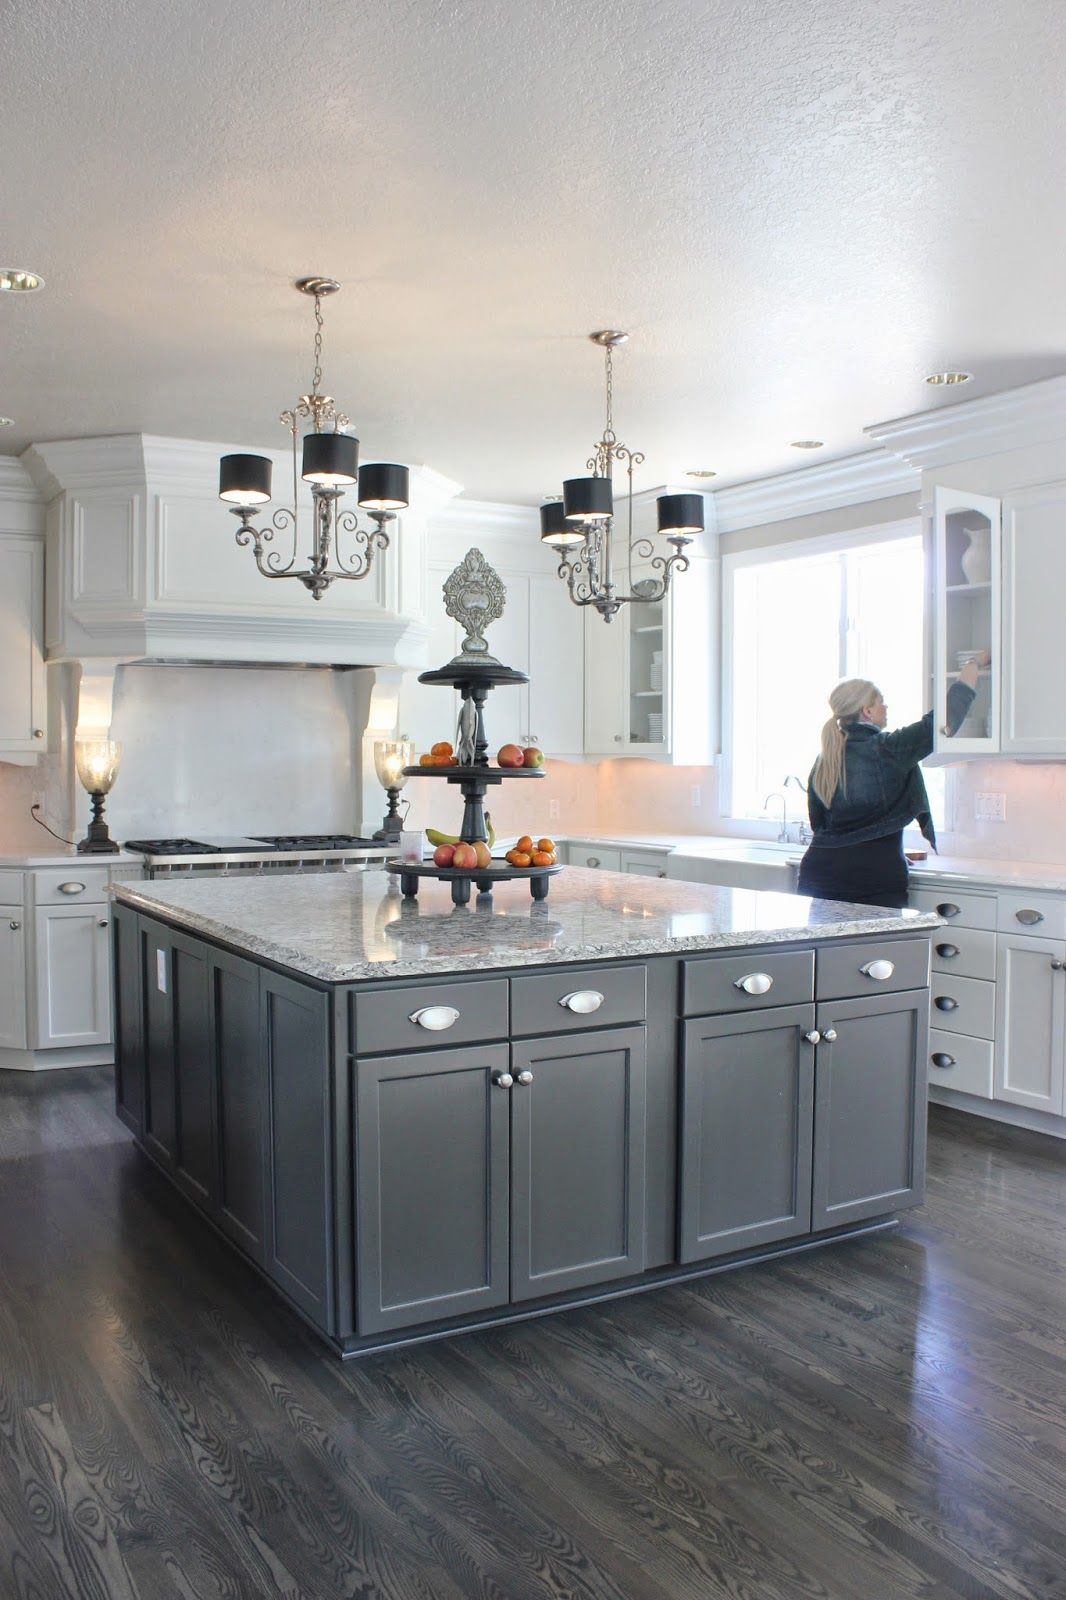 Jill from Forever cottage's design process kitchens